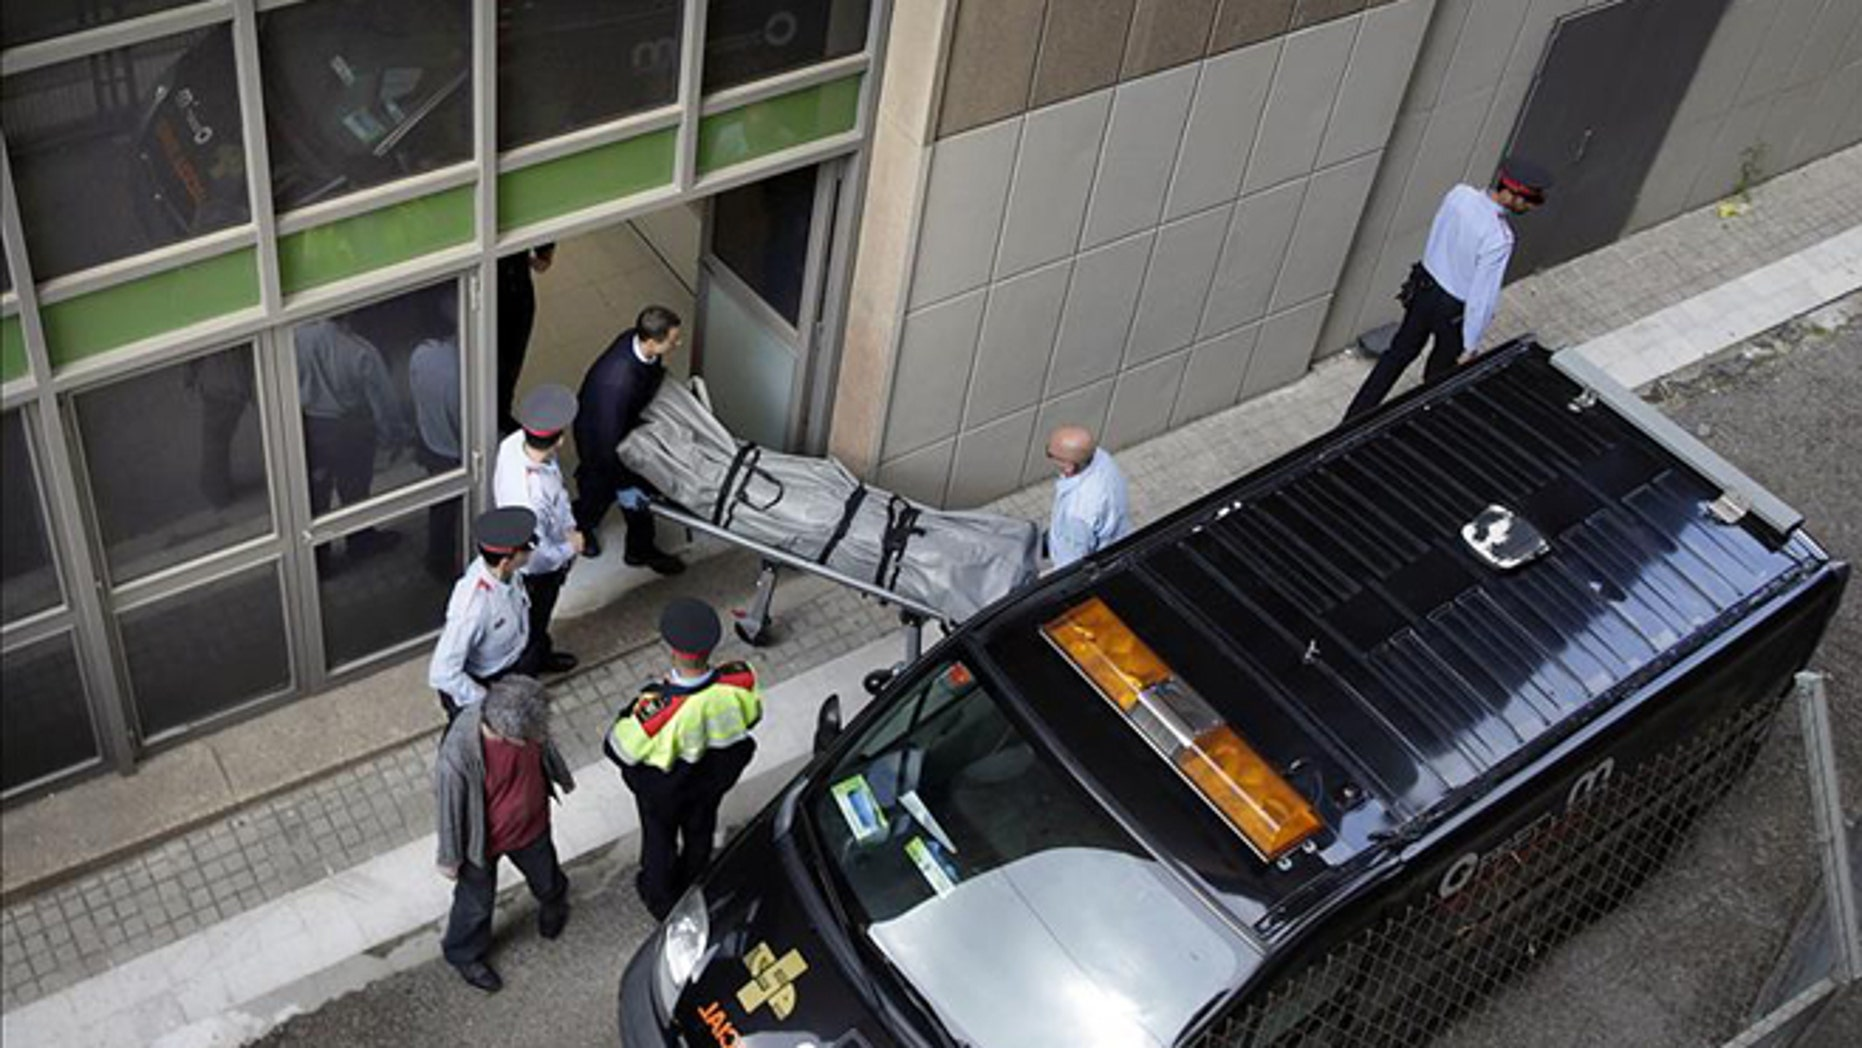 Coroner's office personnel remove the body of IES teacher Joan Fuster from the Barcelona school where a student opened fire on Monday, killing Fuster and injuring four others. (Photo: EFE)